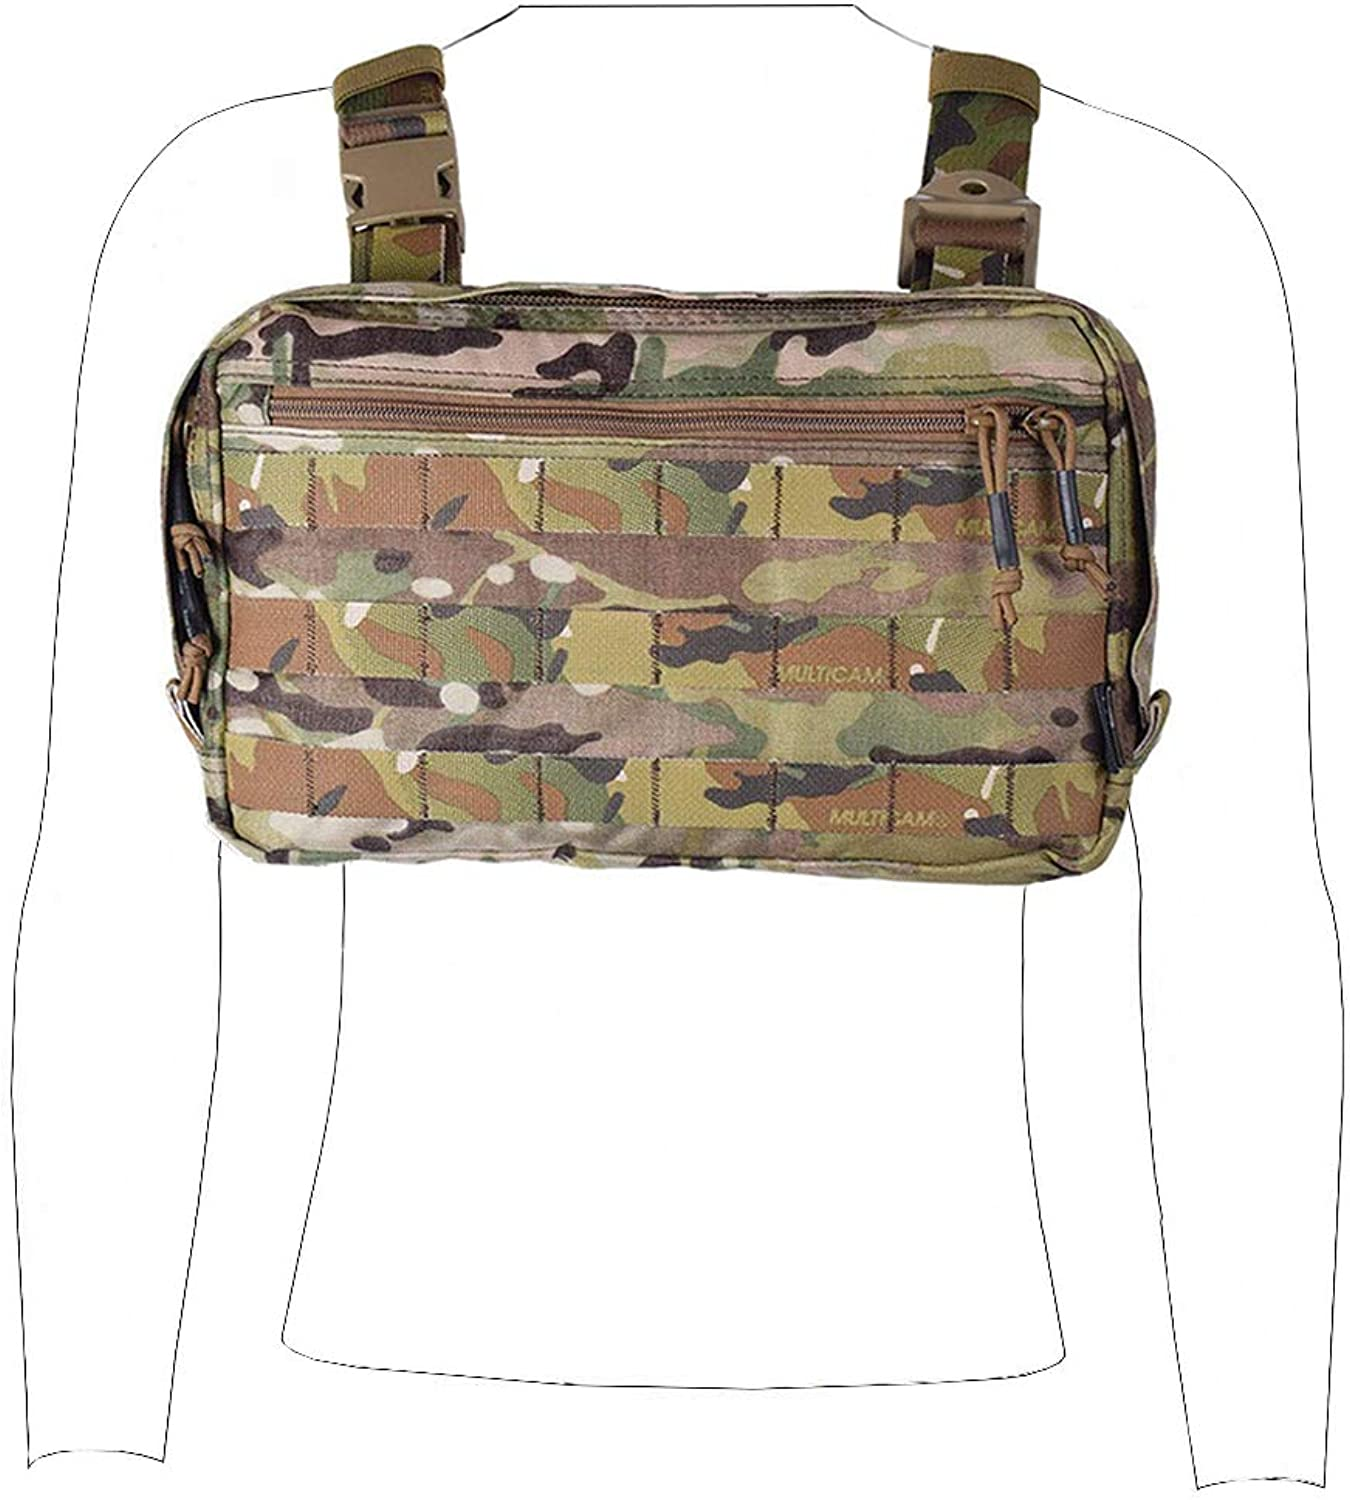 Tactical Recon Kit Bag Military Paintball EDC Pouch Airsoft Combat Bag